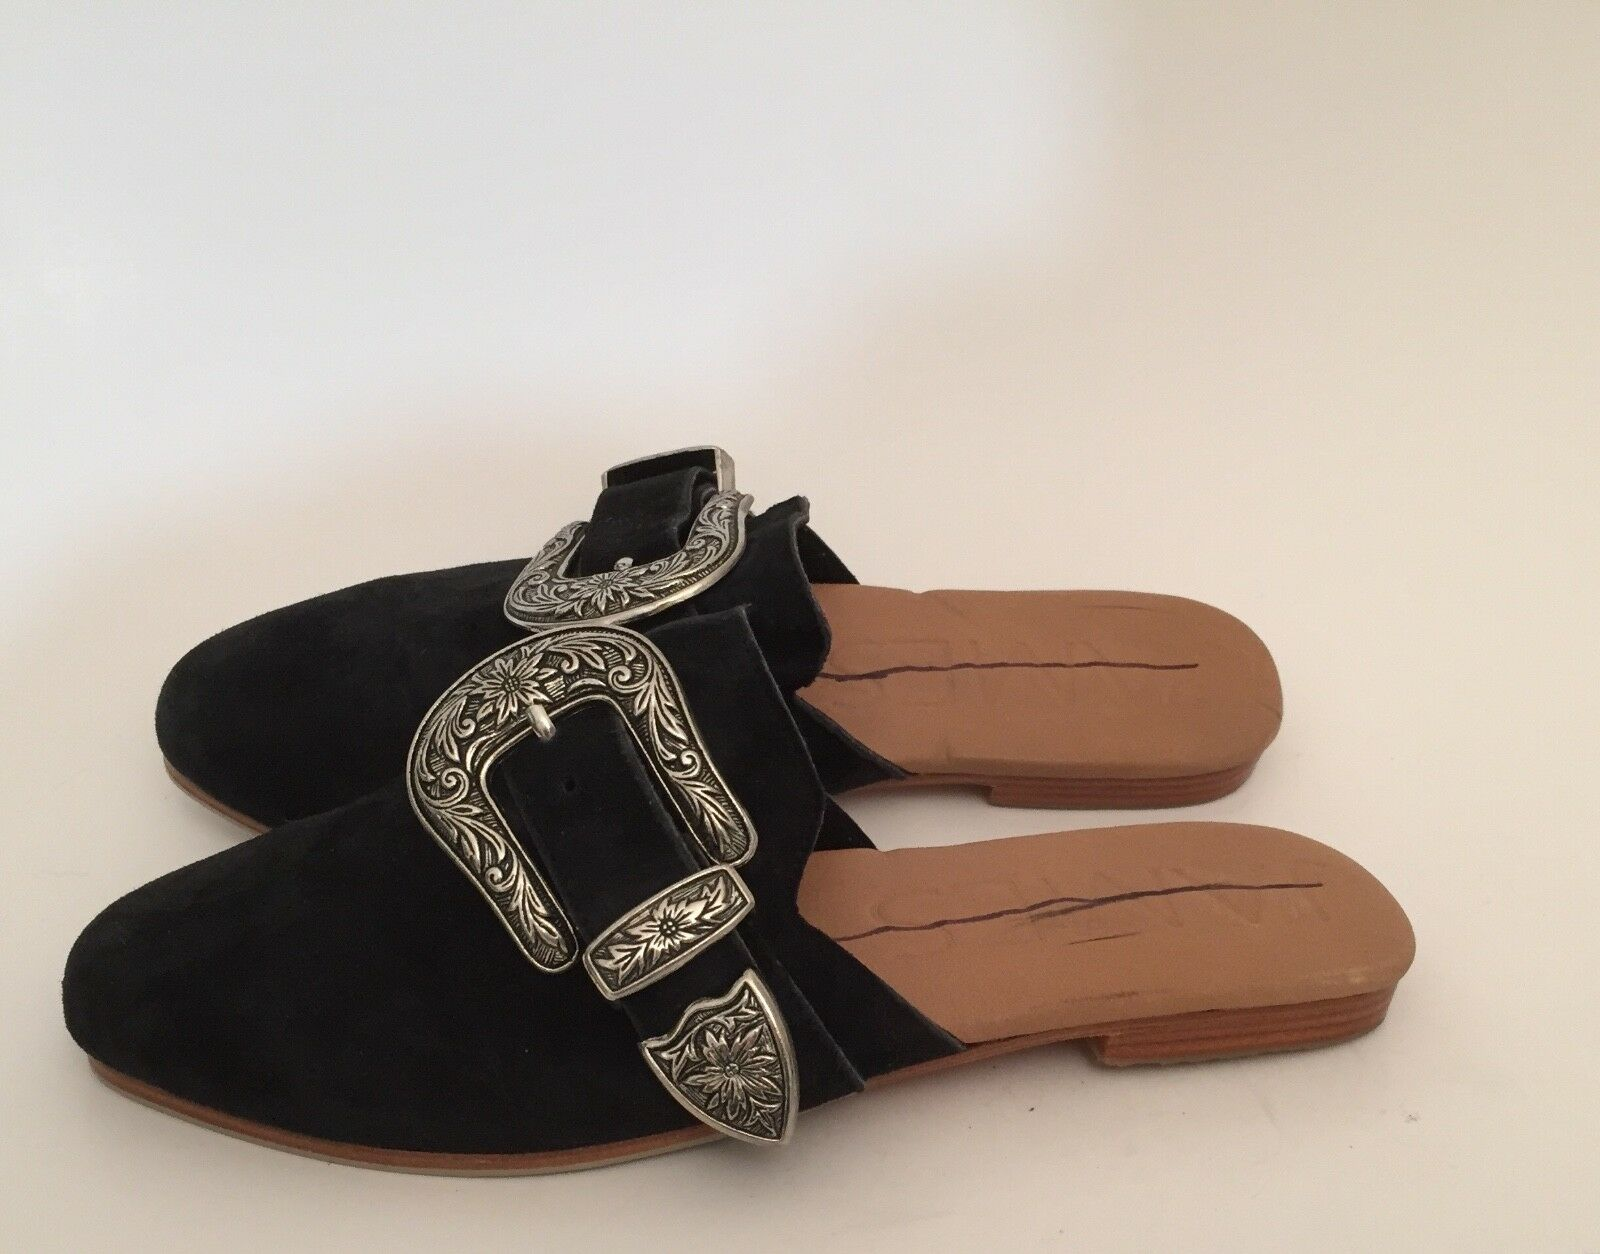 James Smith Luxe Black Suede Western Buckle Slip On Pointed Toe Mule Flats Sz 38